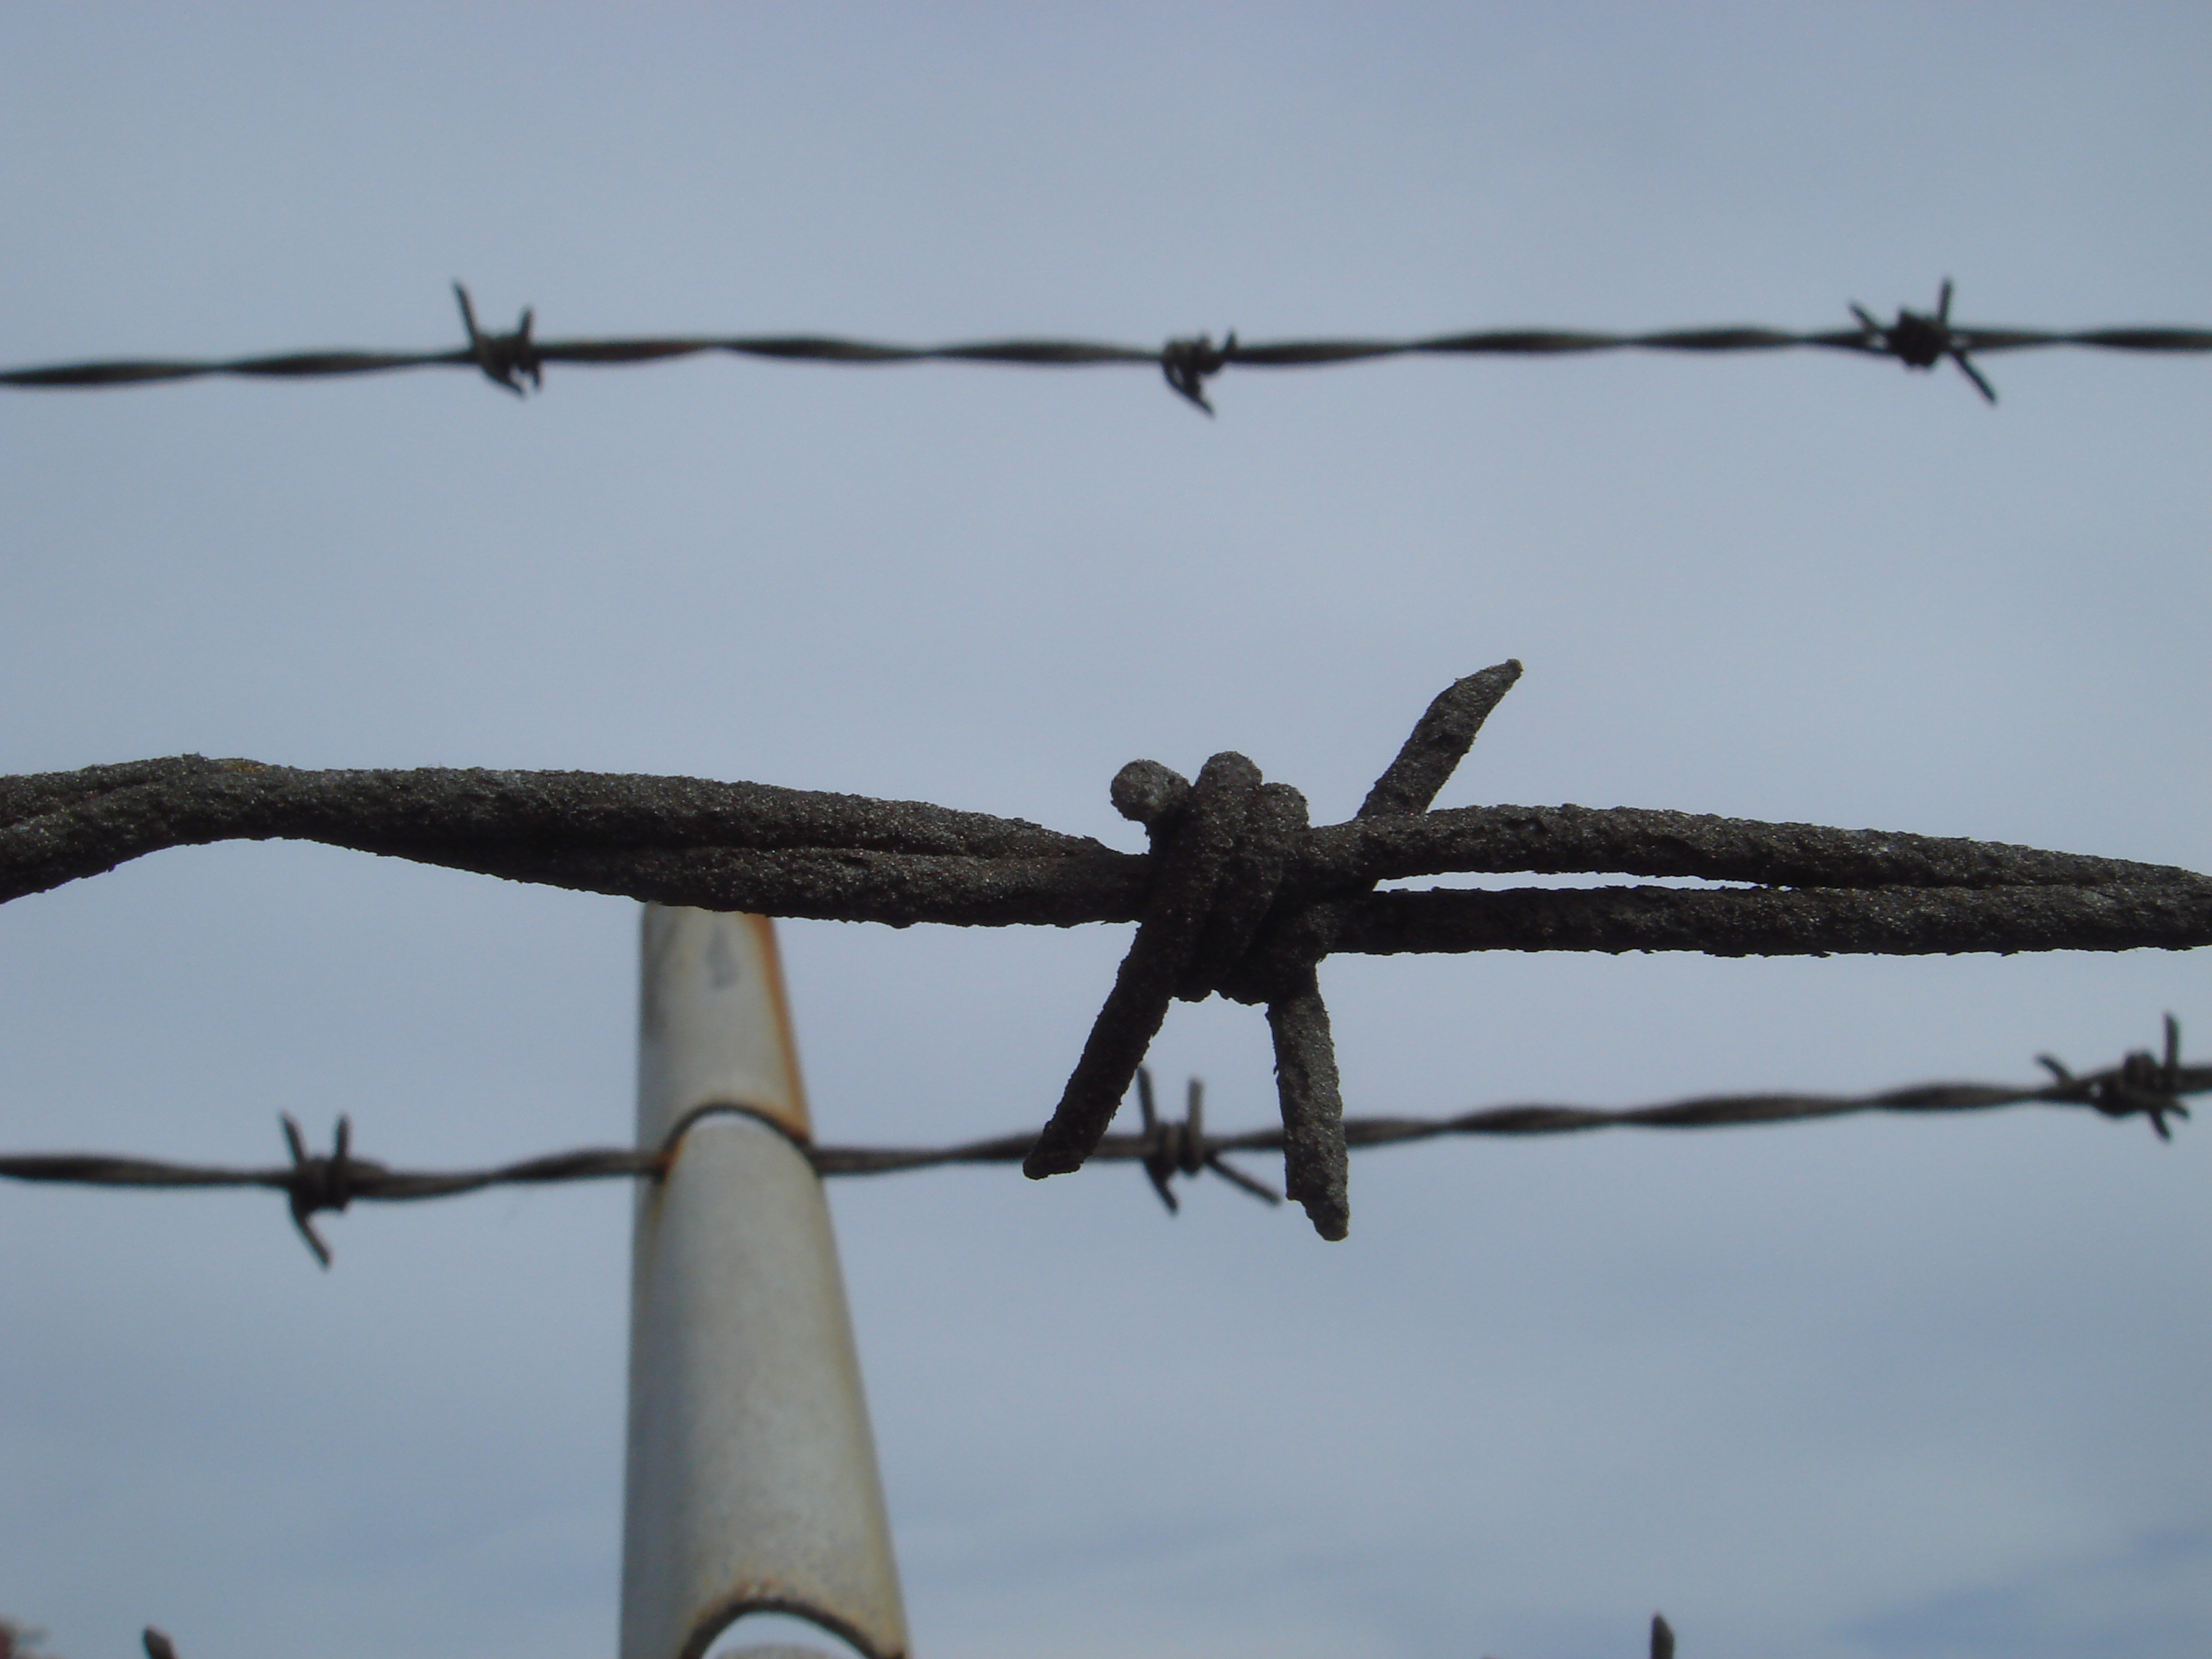 Get Over a Barbed Wire Fence